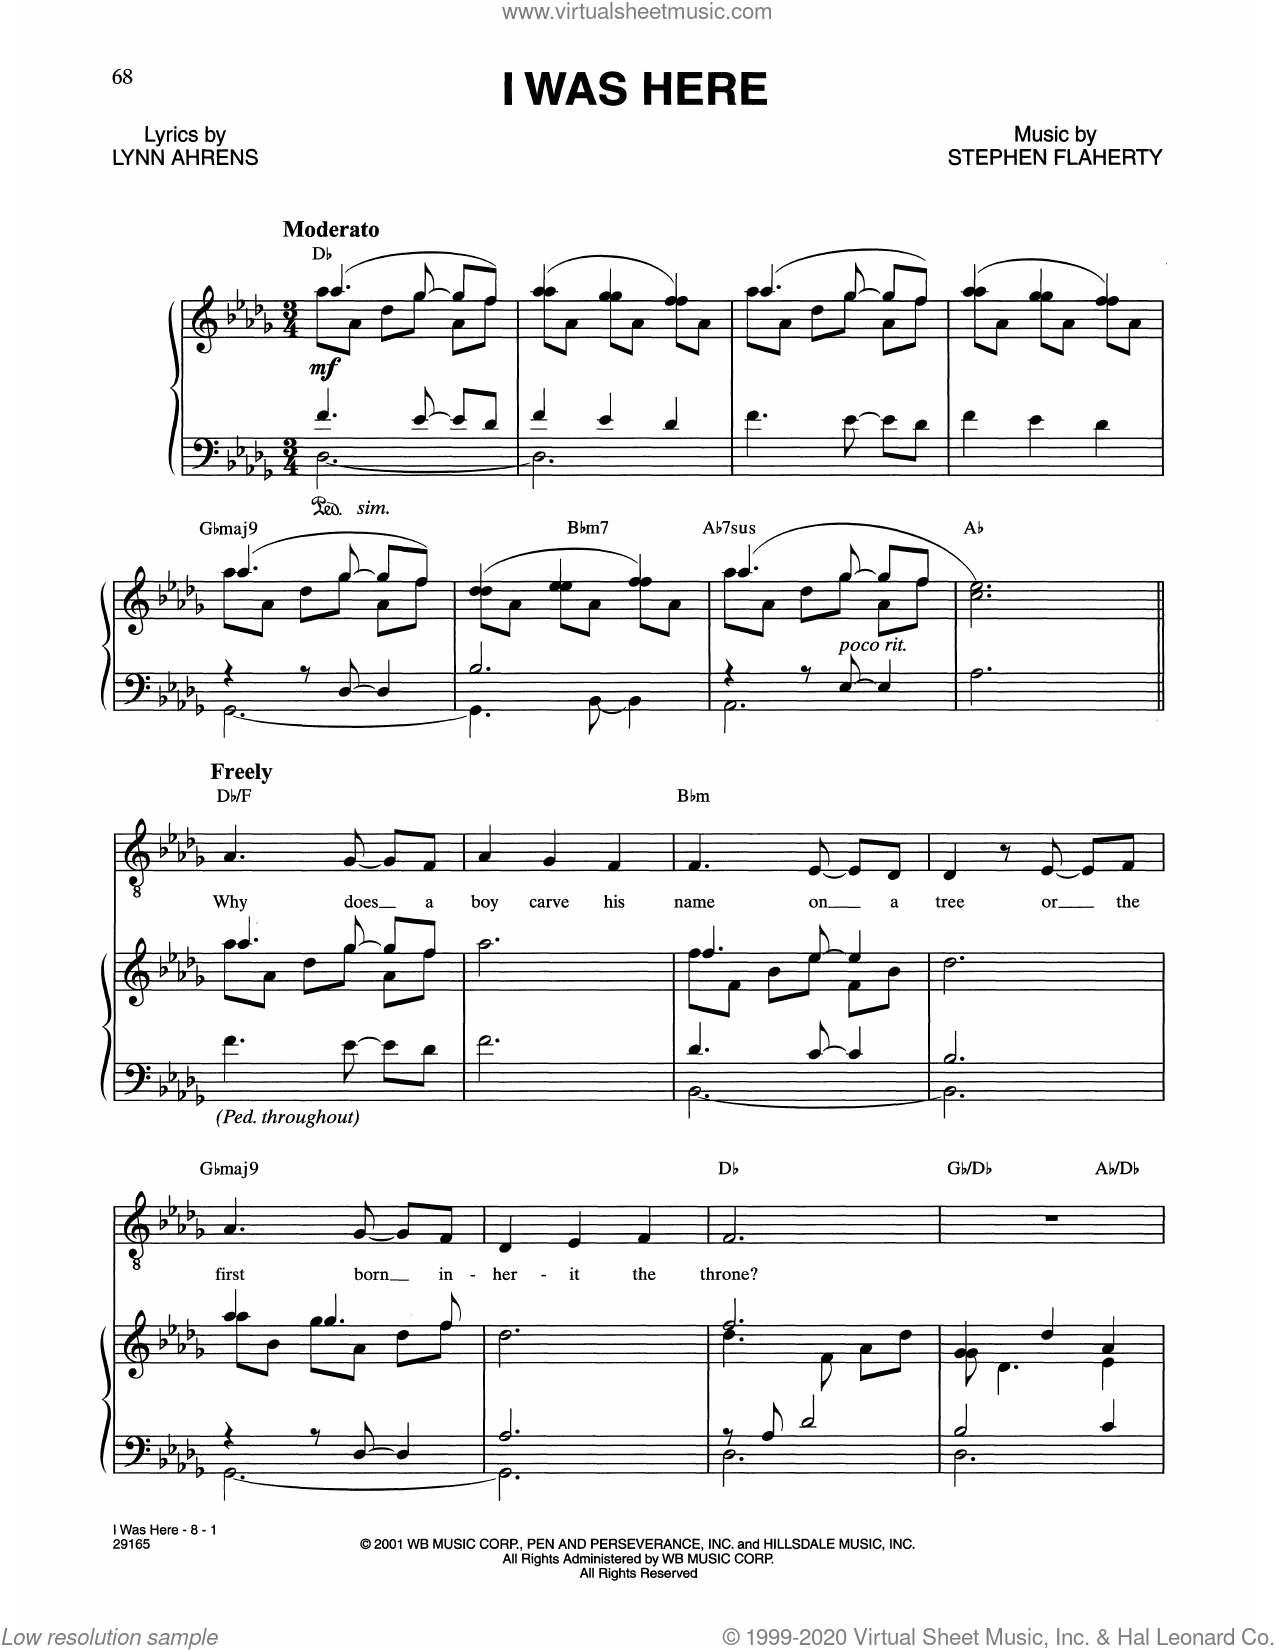 I Was Here (from The Glorious Ones) sheet music for voice and piano by Stephen Flaherty and Lynn Ahrens and Stephen Flaherty and Lynn Ahrens, intermediate skill level